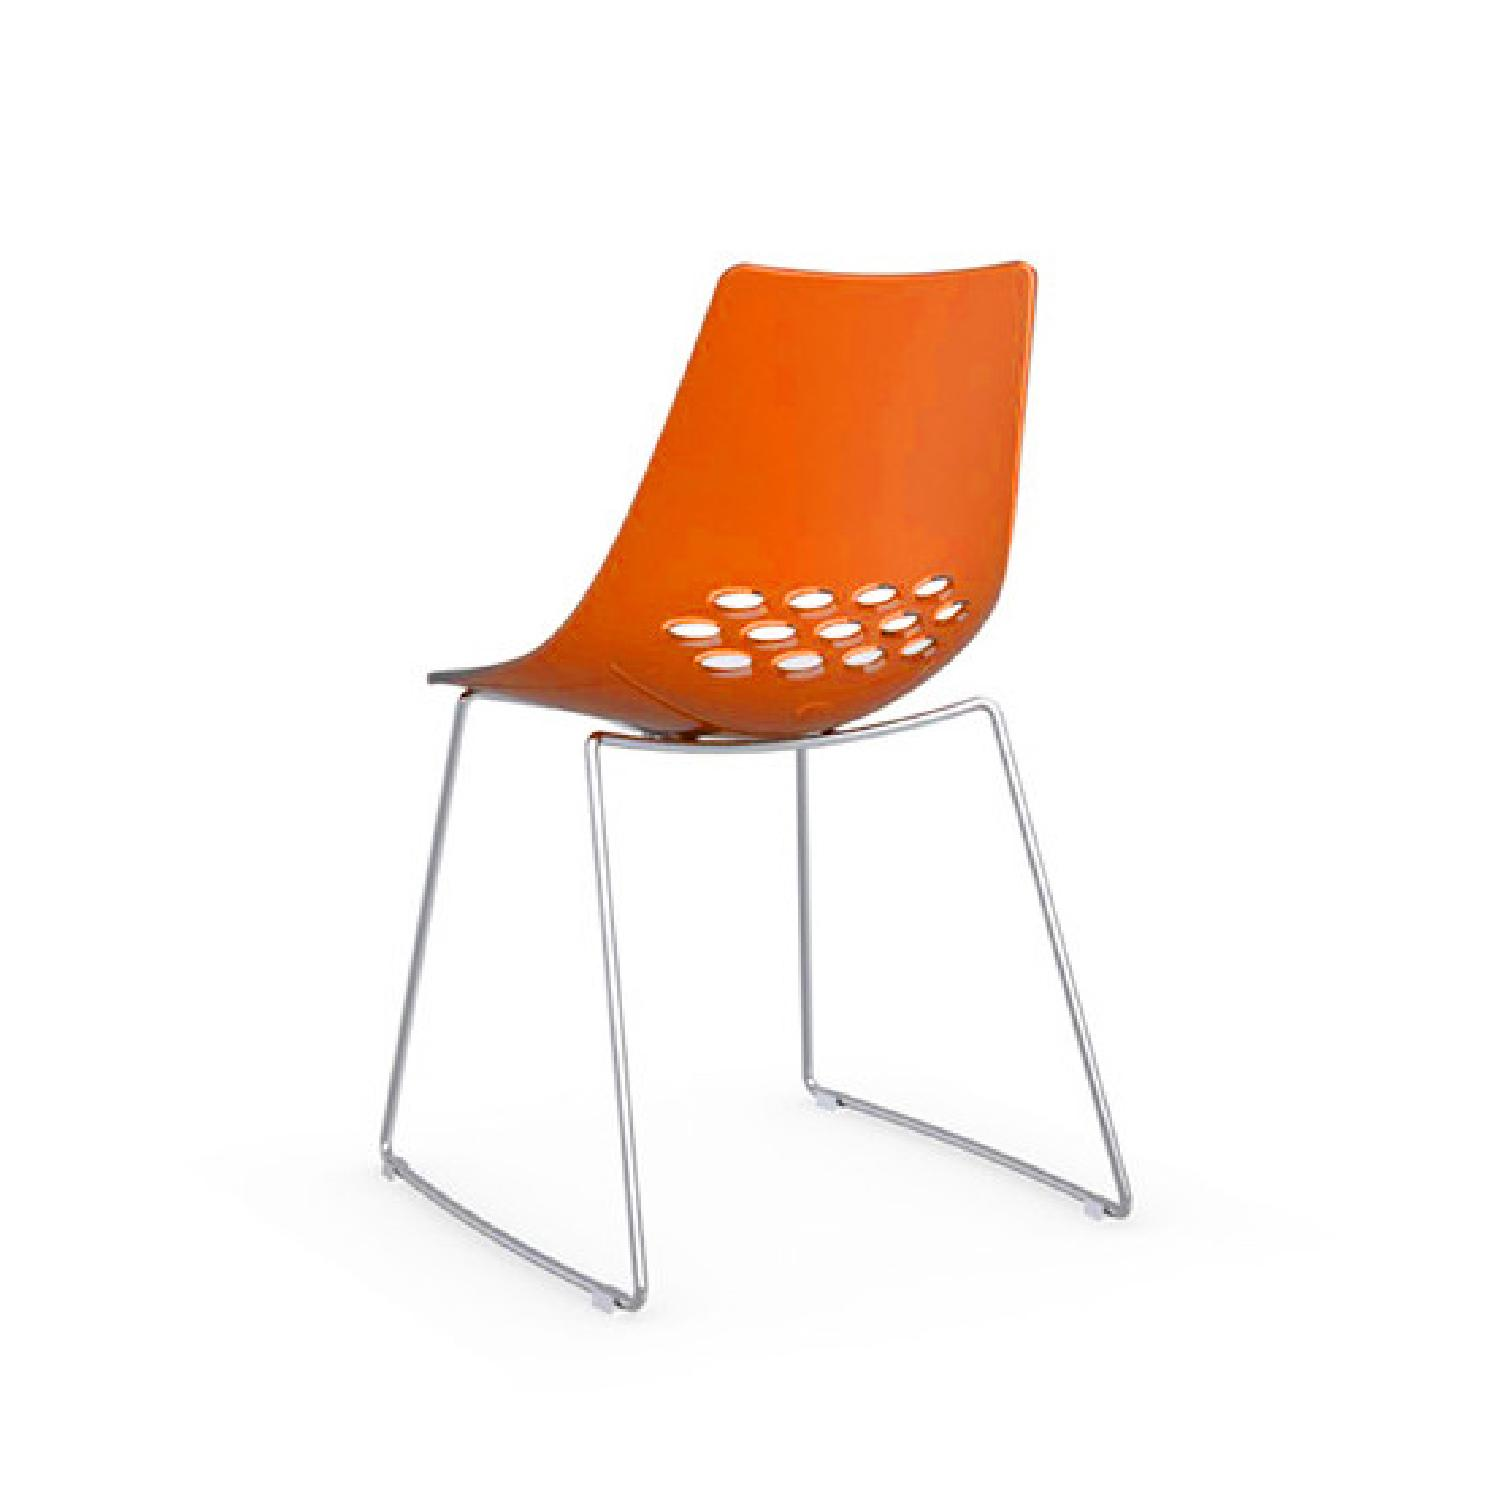 Calligaris Jam Chairs - image-4